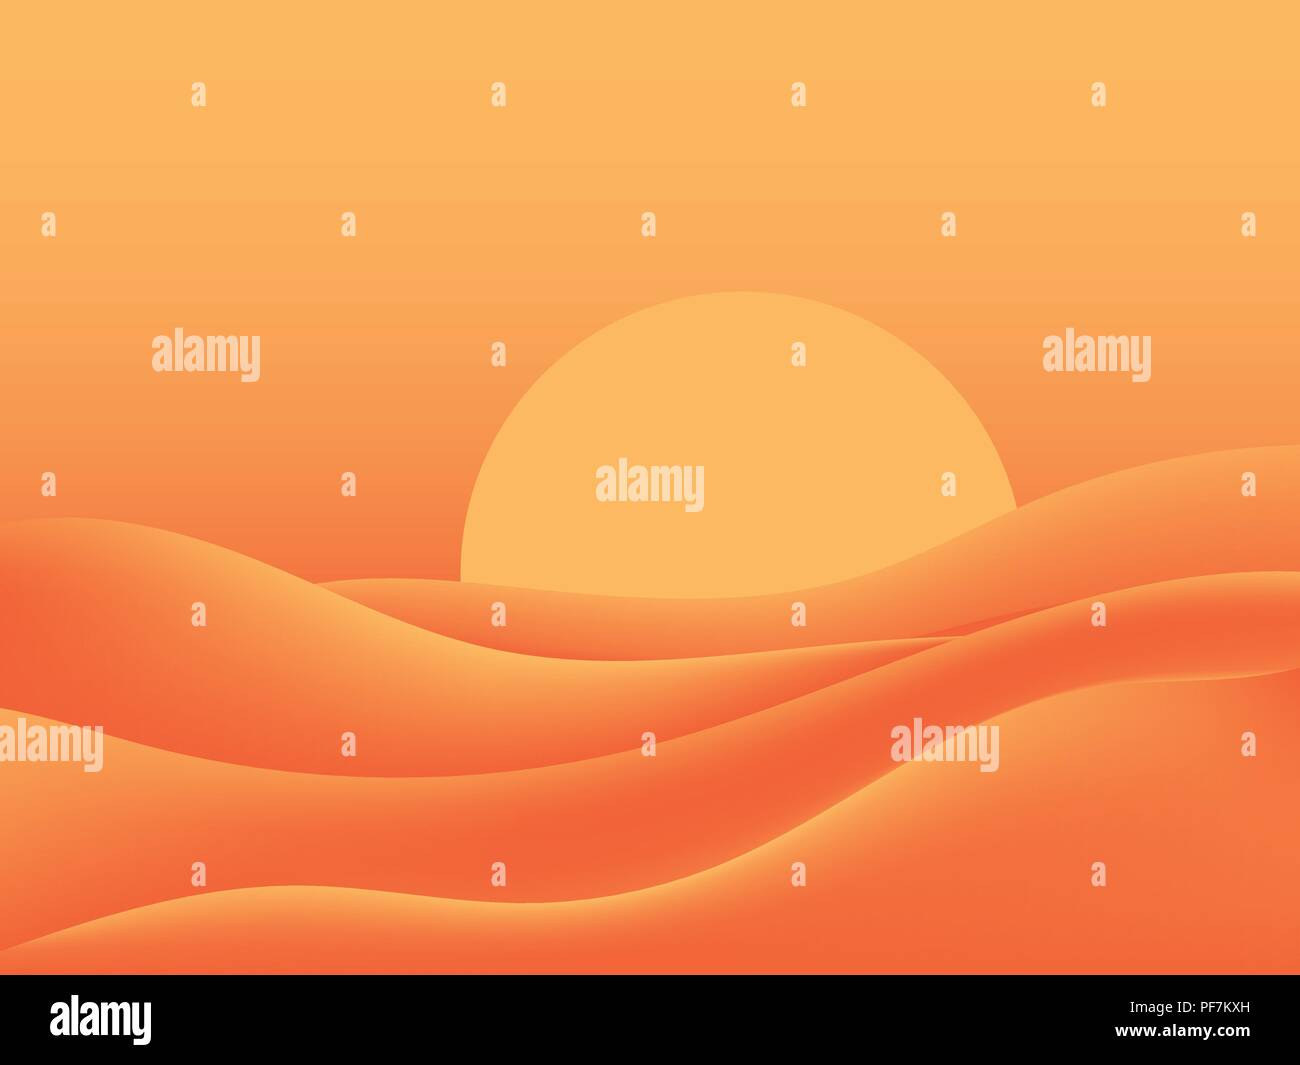 Hot desert, scorching sun. Landscape with sand dunes. Vector illustration - Stock Vector